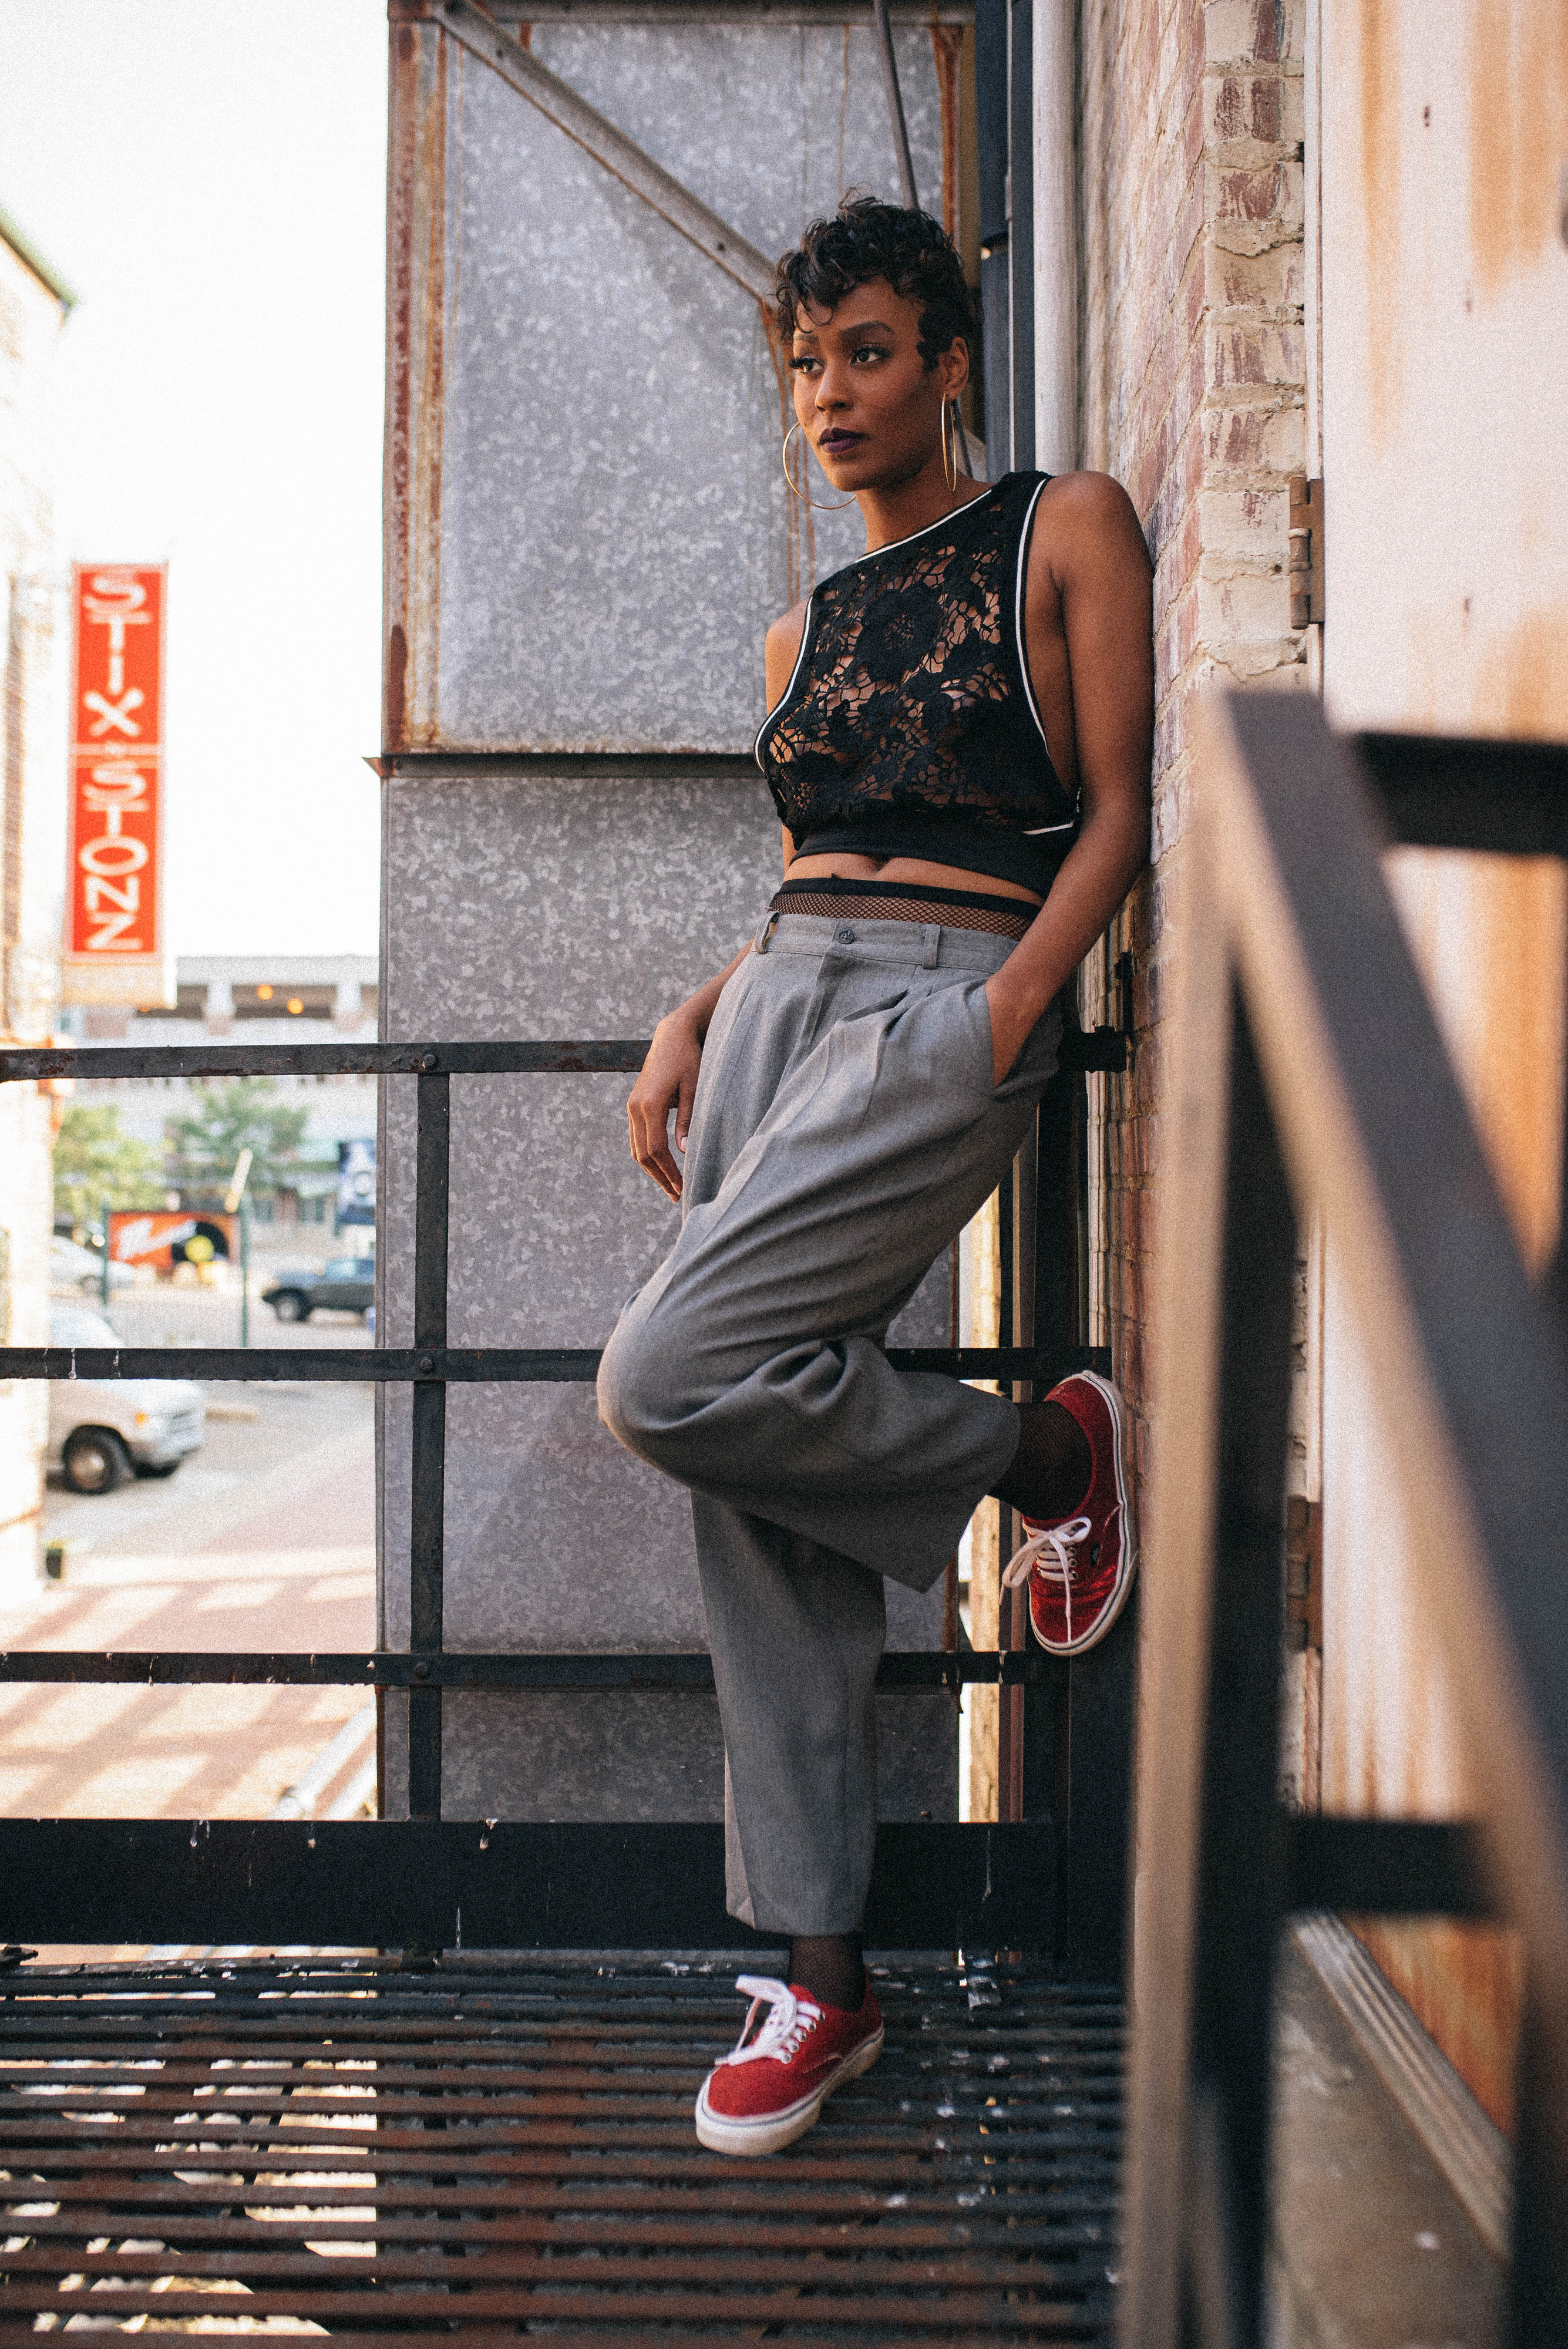 69c3a9ae6e athleisure Archives - Page 2 of 3 - 360 MAGAZINE | ART + MUSIC + ...